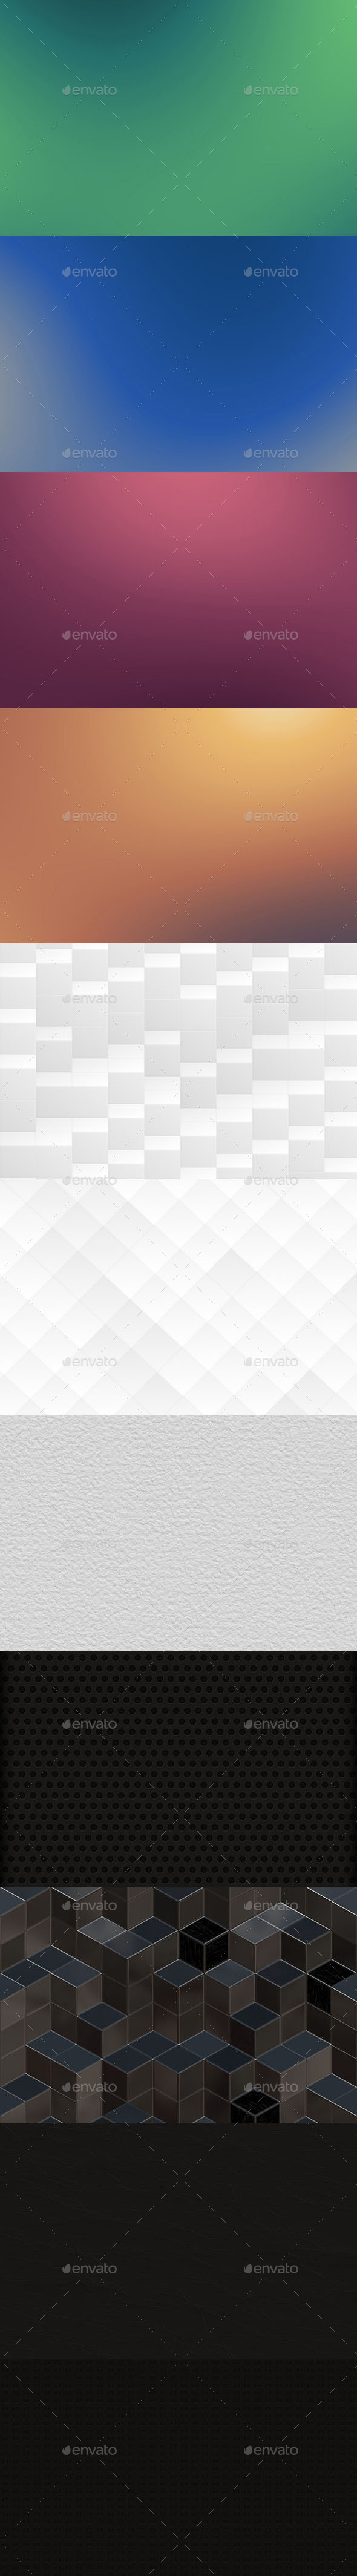 GraphicRiver Abstract Backgrounds Bundle 10436842